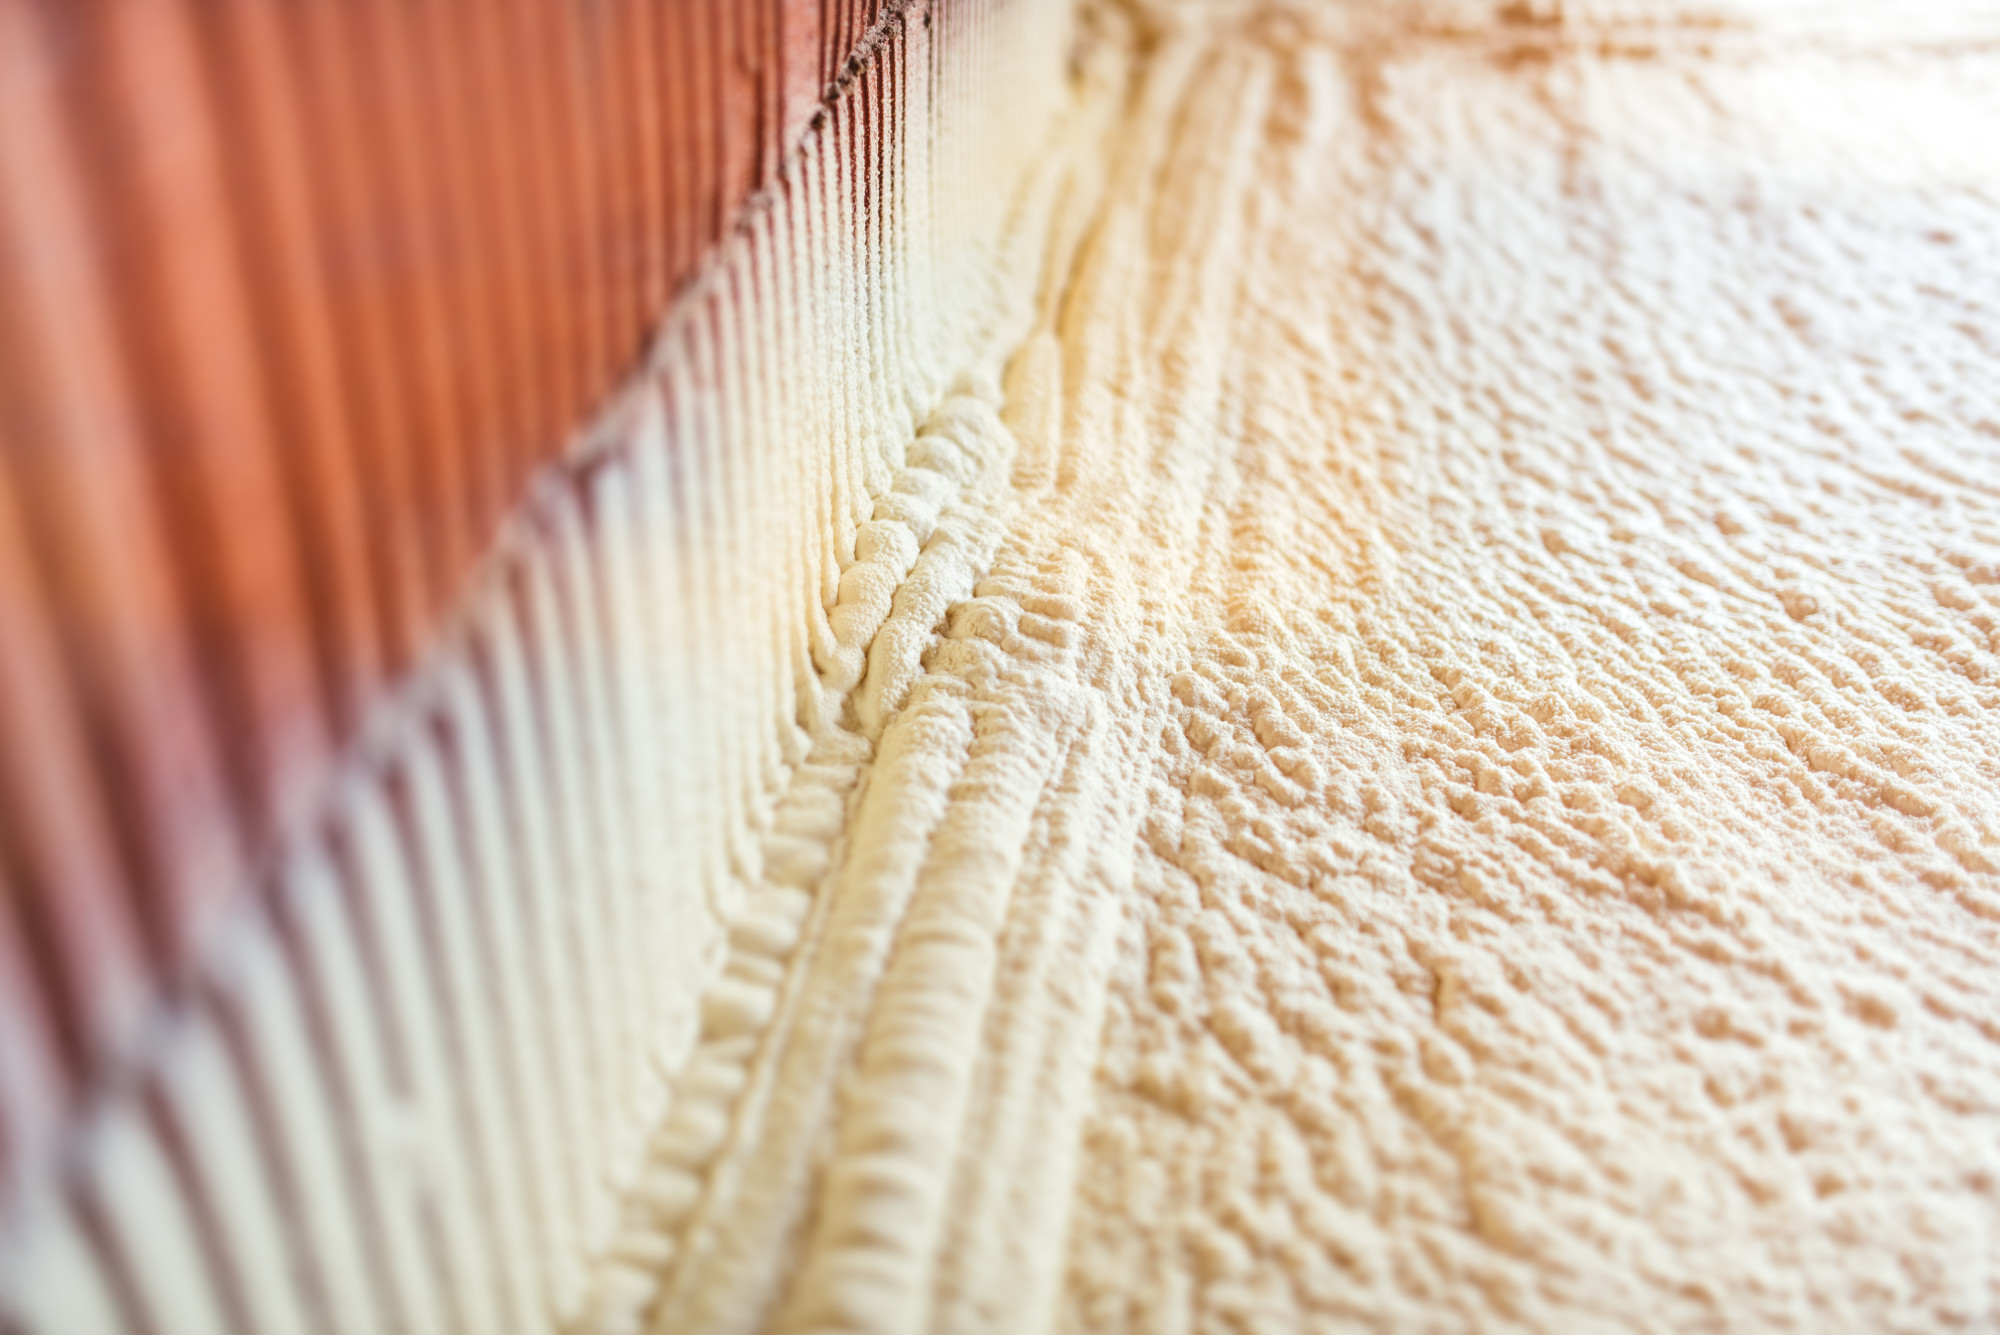 DIY Spray Foam Insulation: Helpful Tips and Techniques